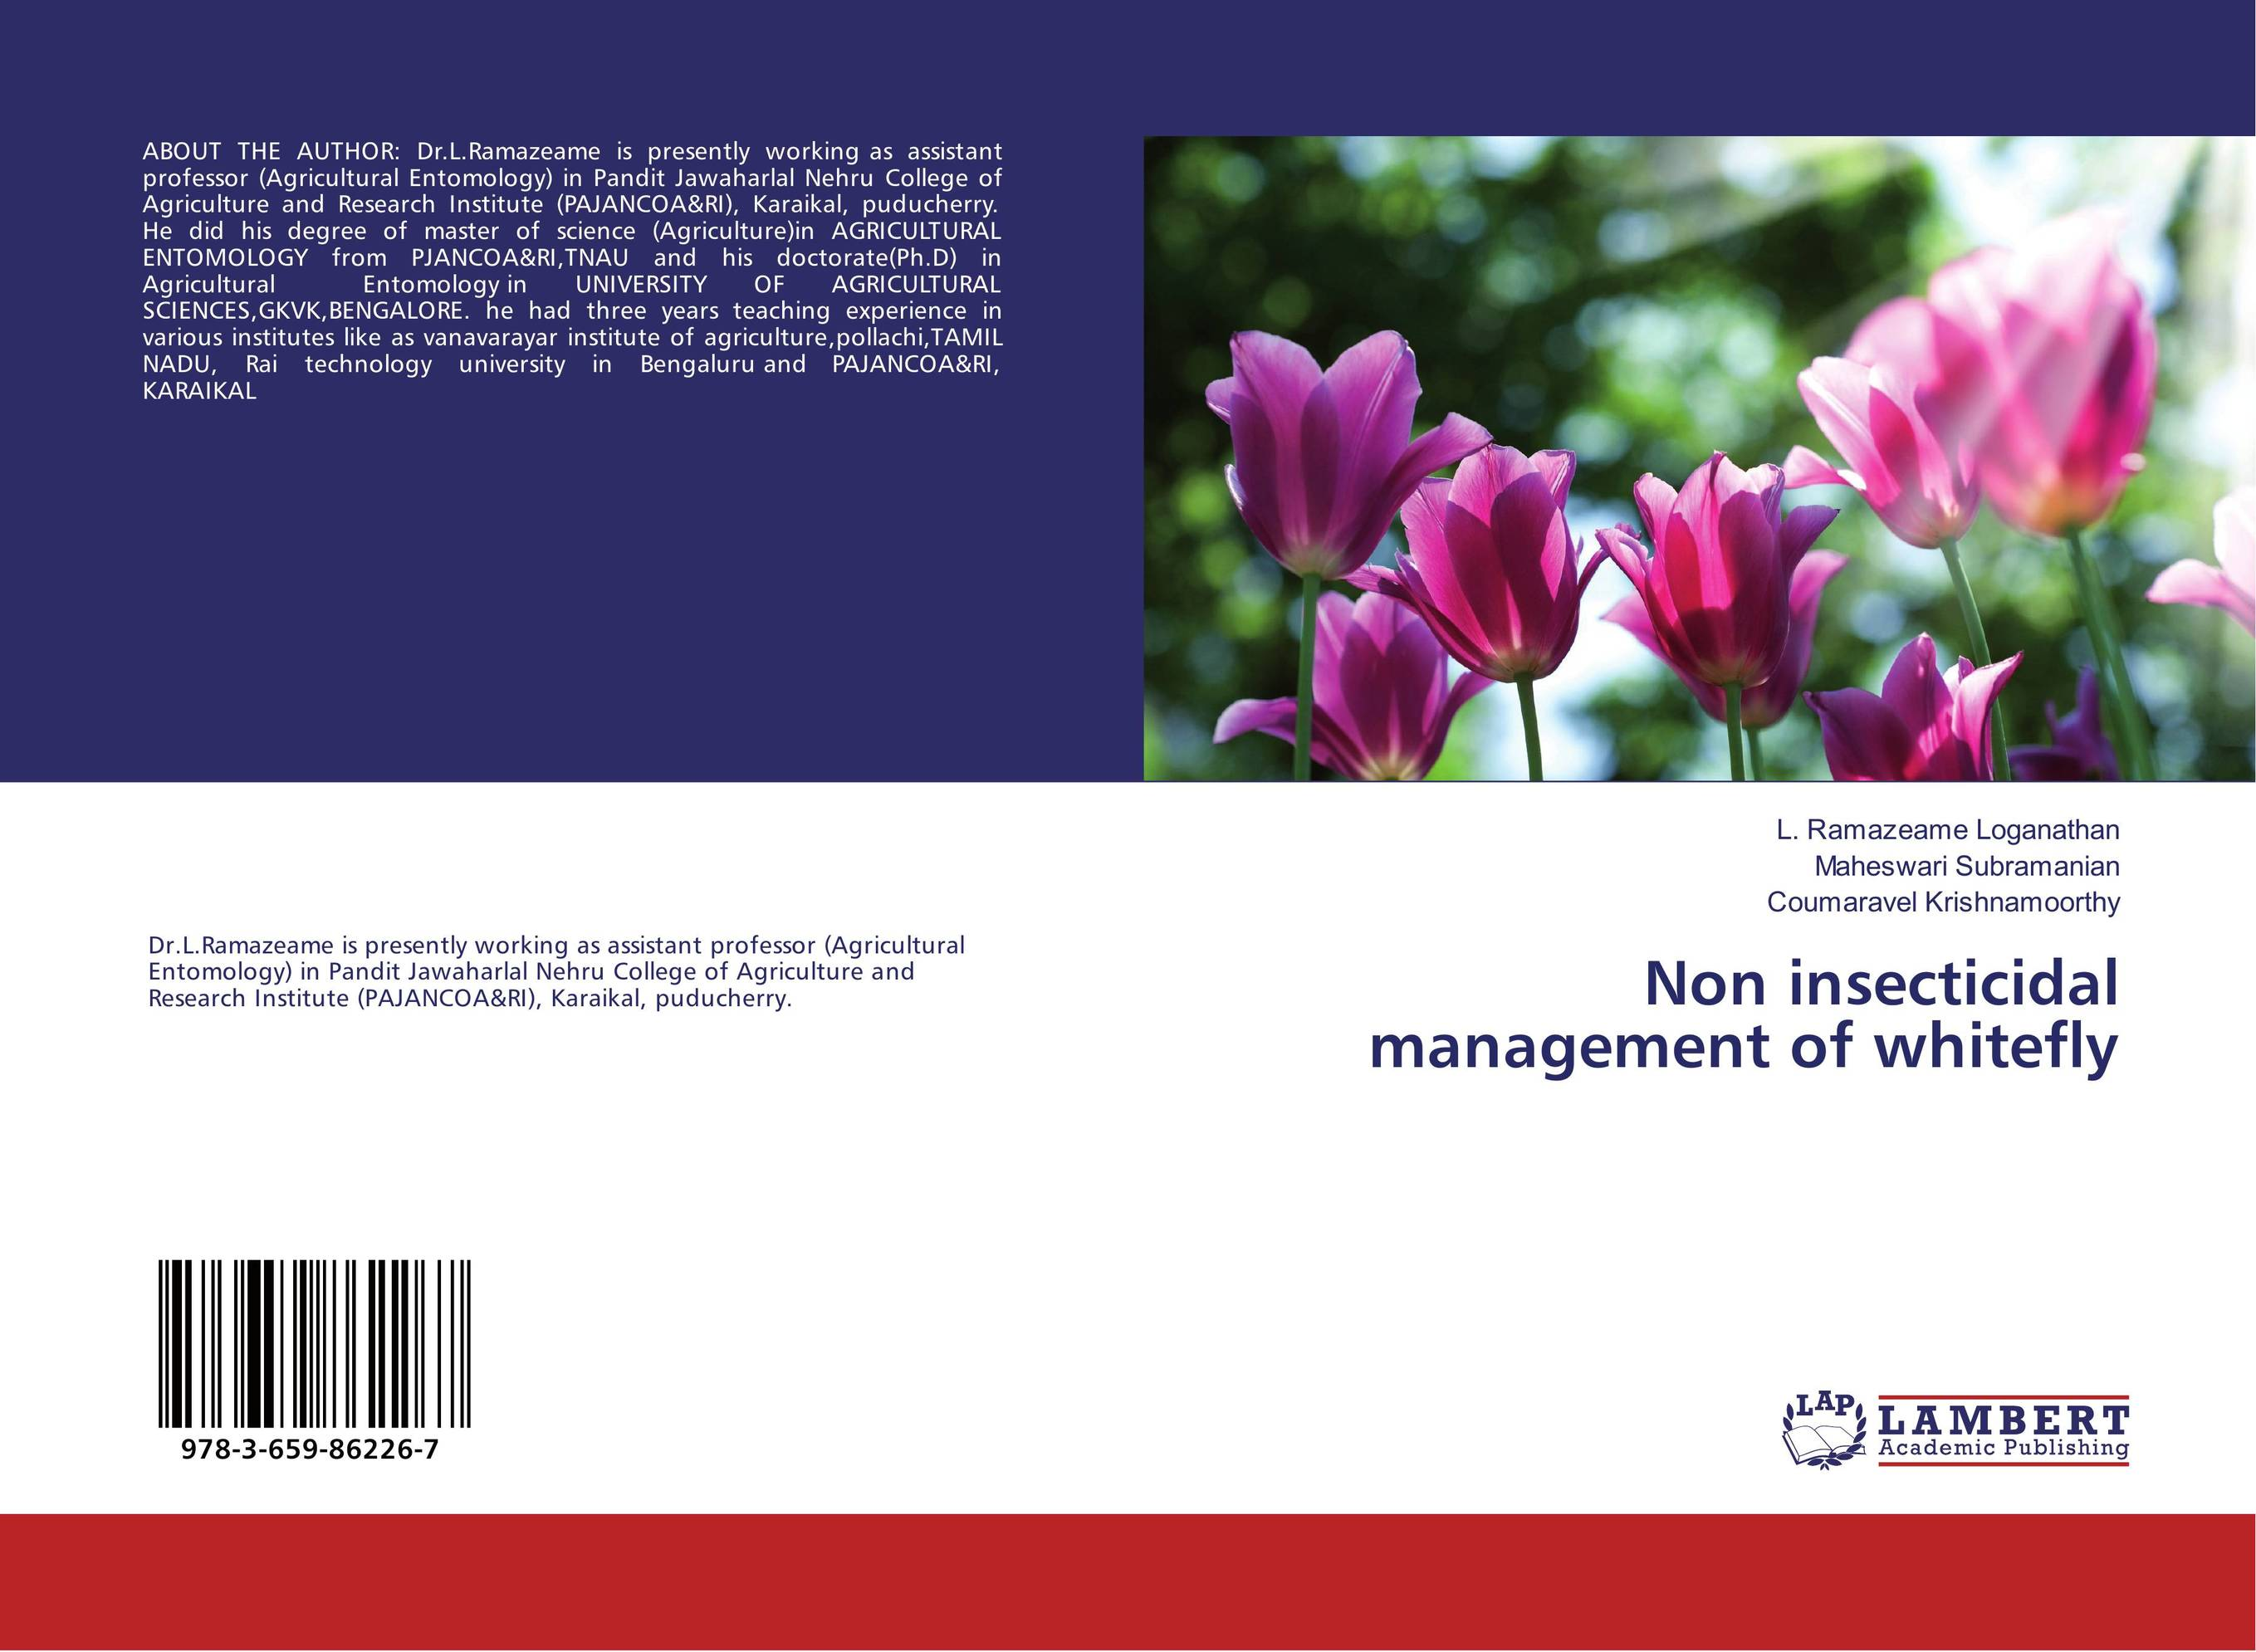 Non insecticidal management of whitefly